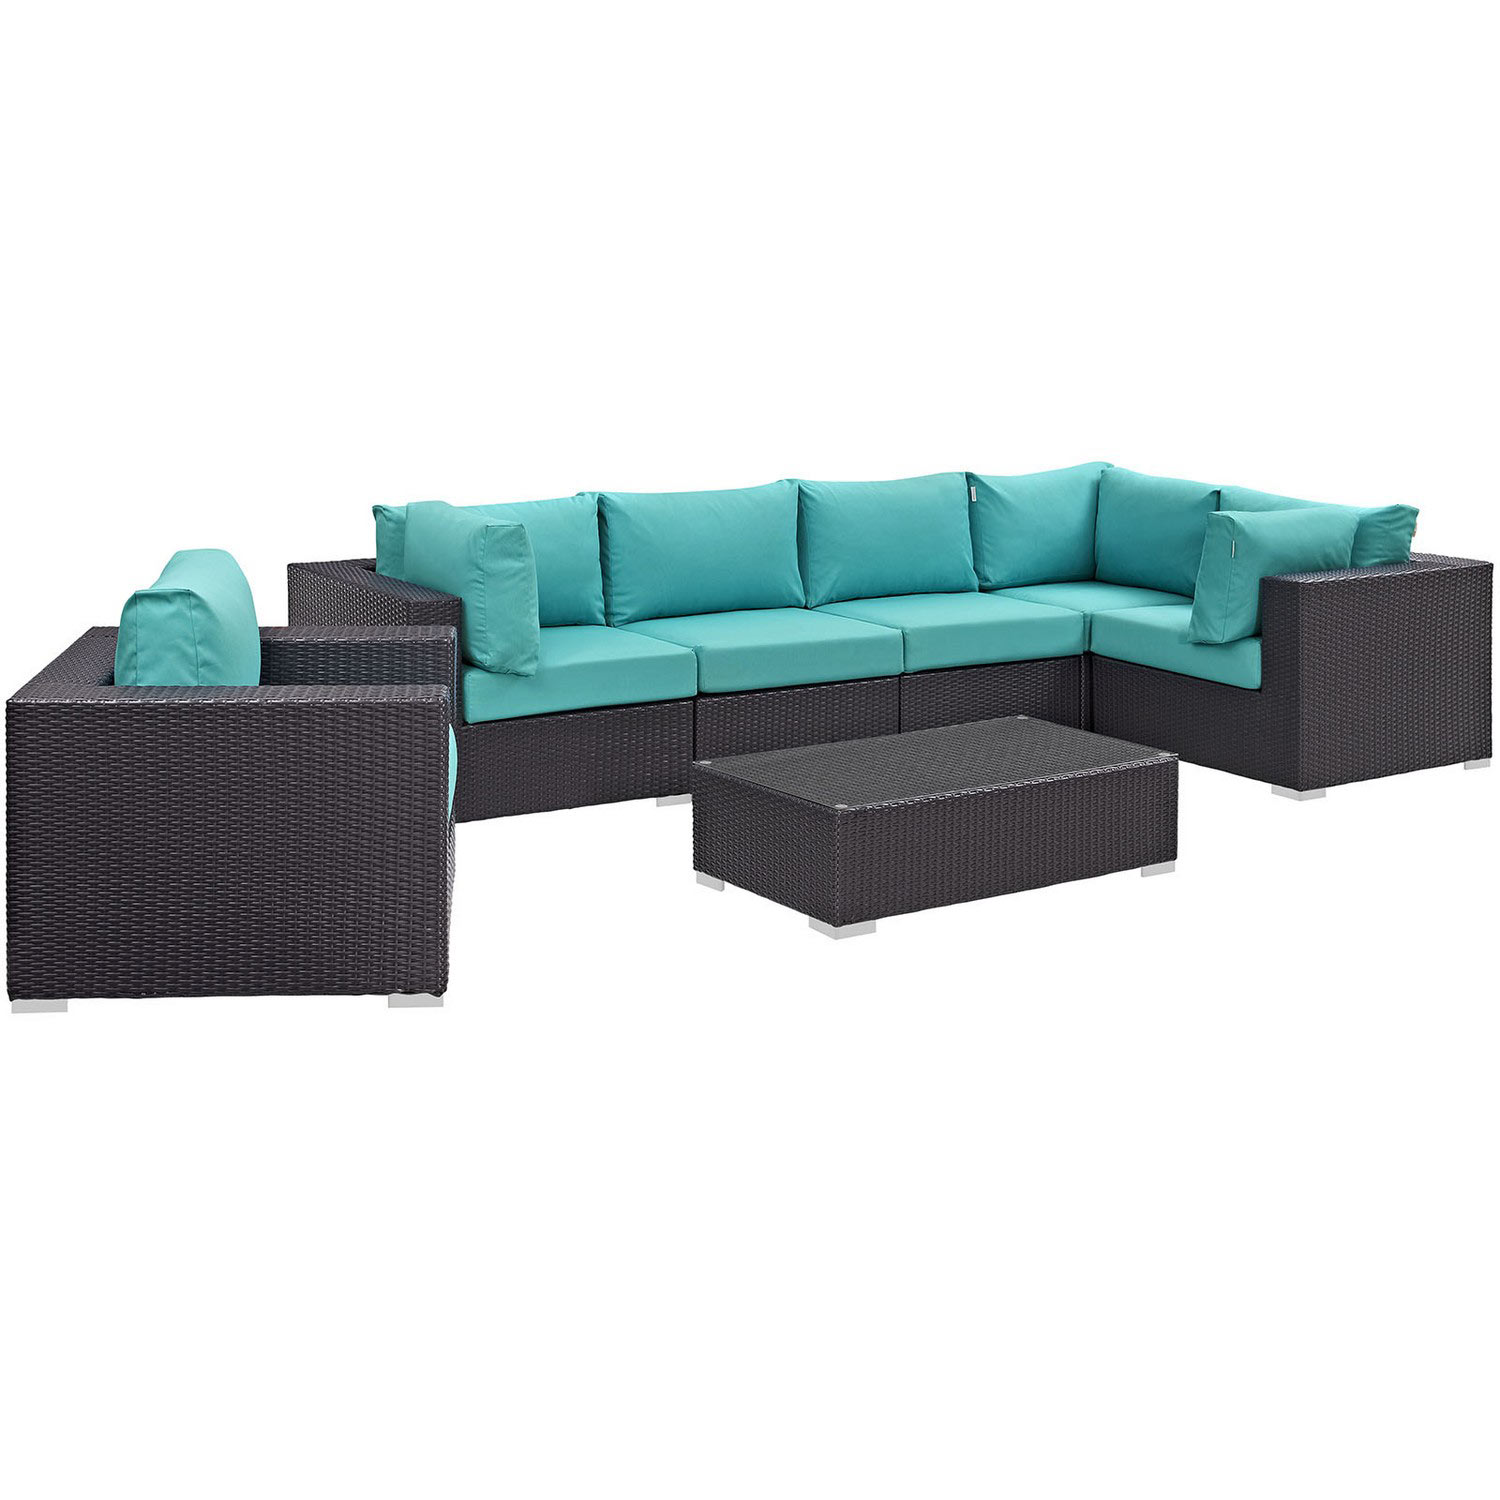 Modway Convene 7 Piece Outdoor Patio Sectional Set - Espresso Turquoise